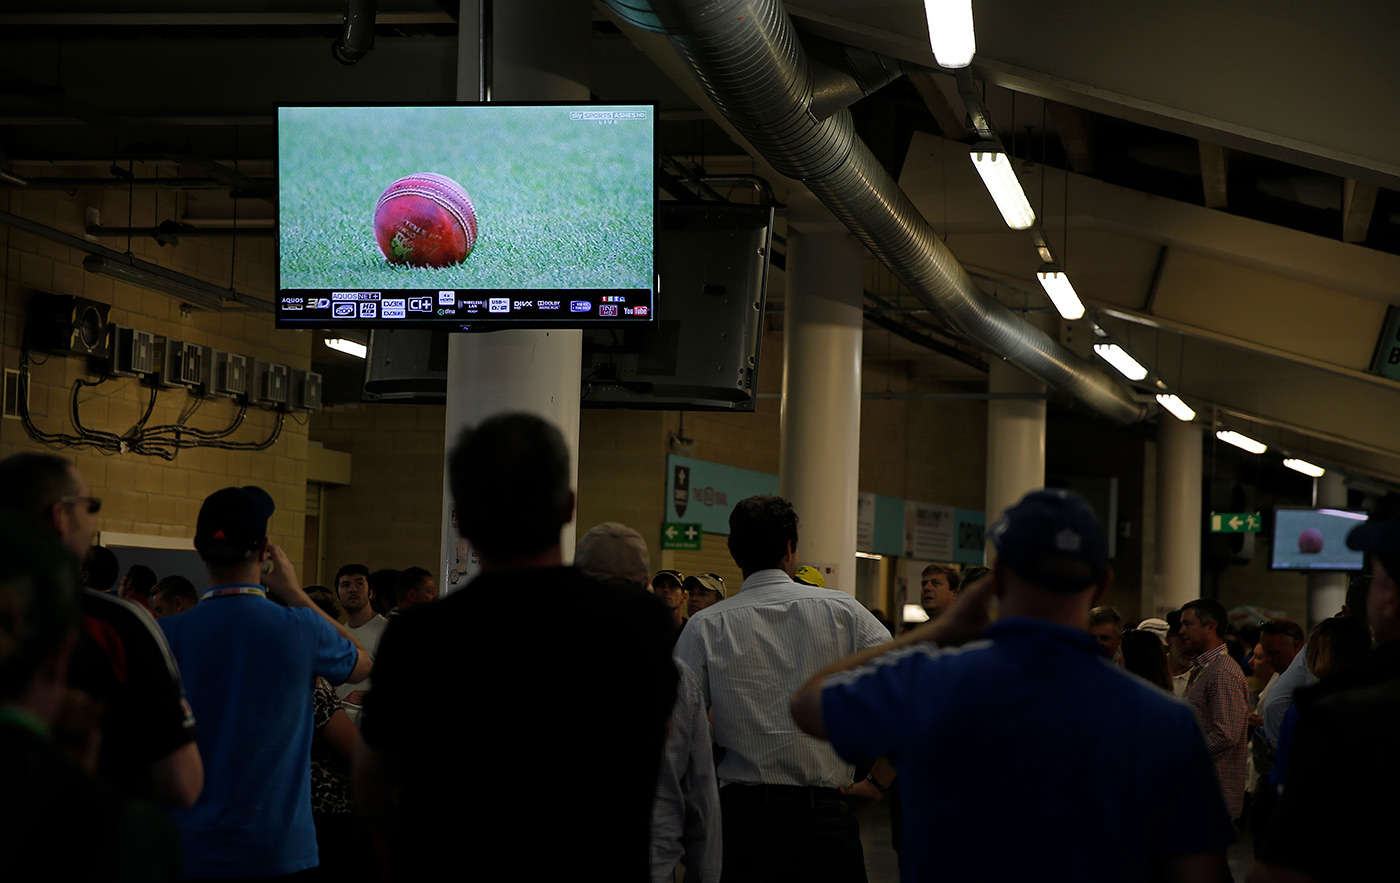 People watch the match on a large screen